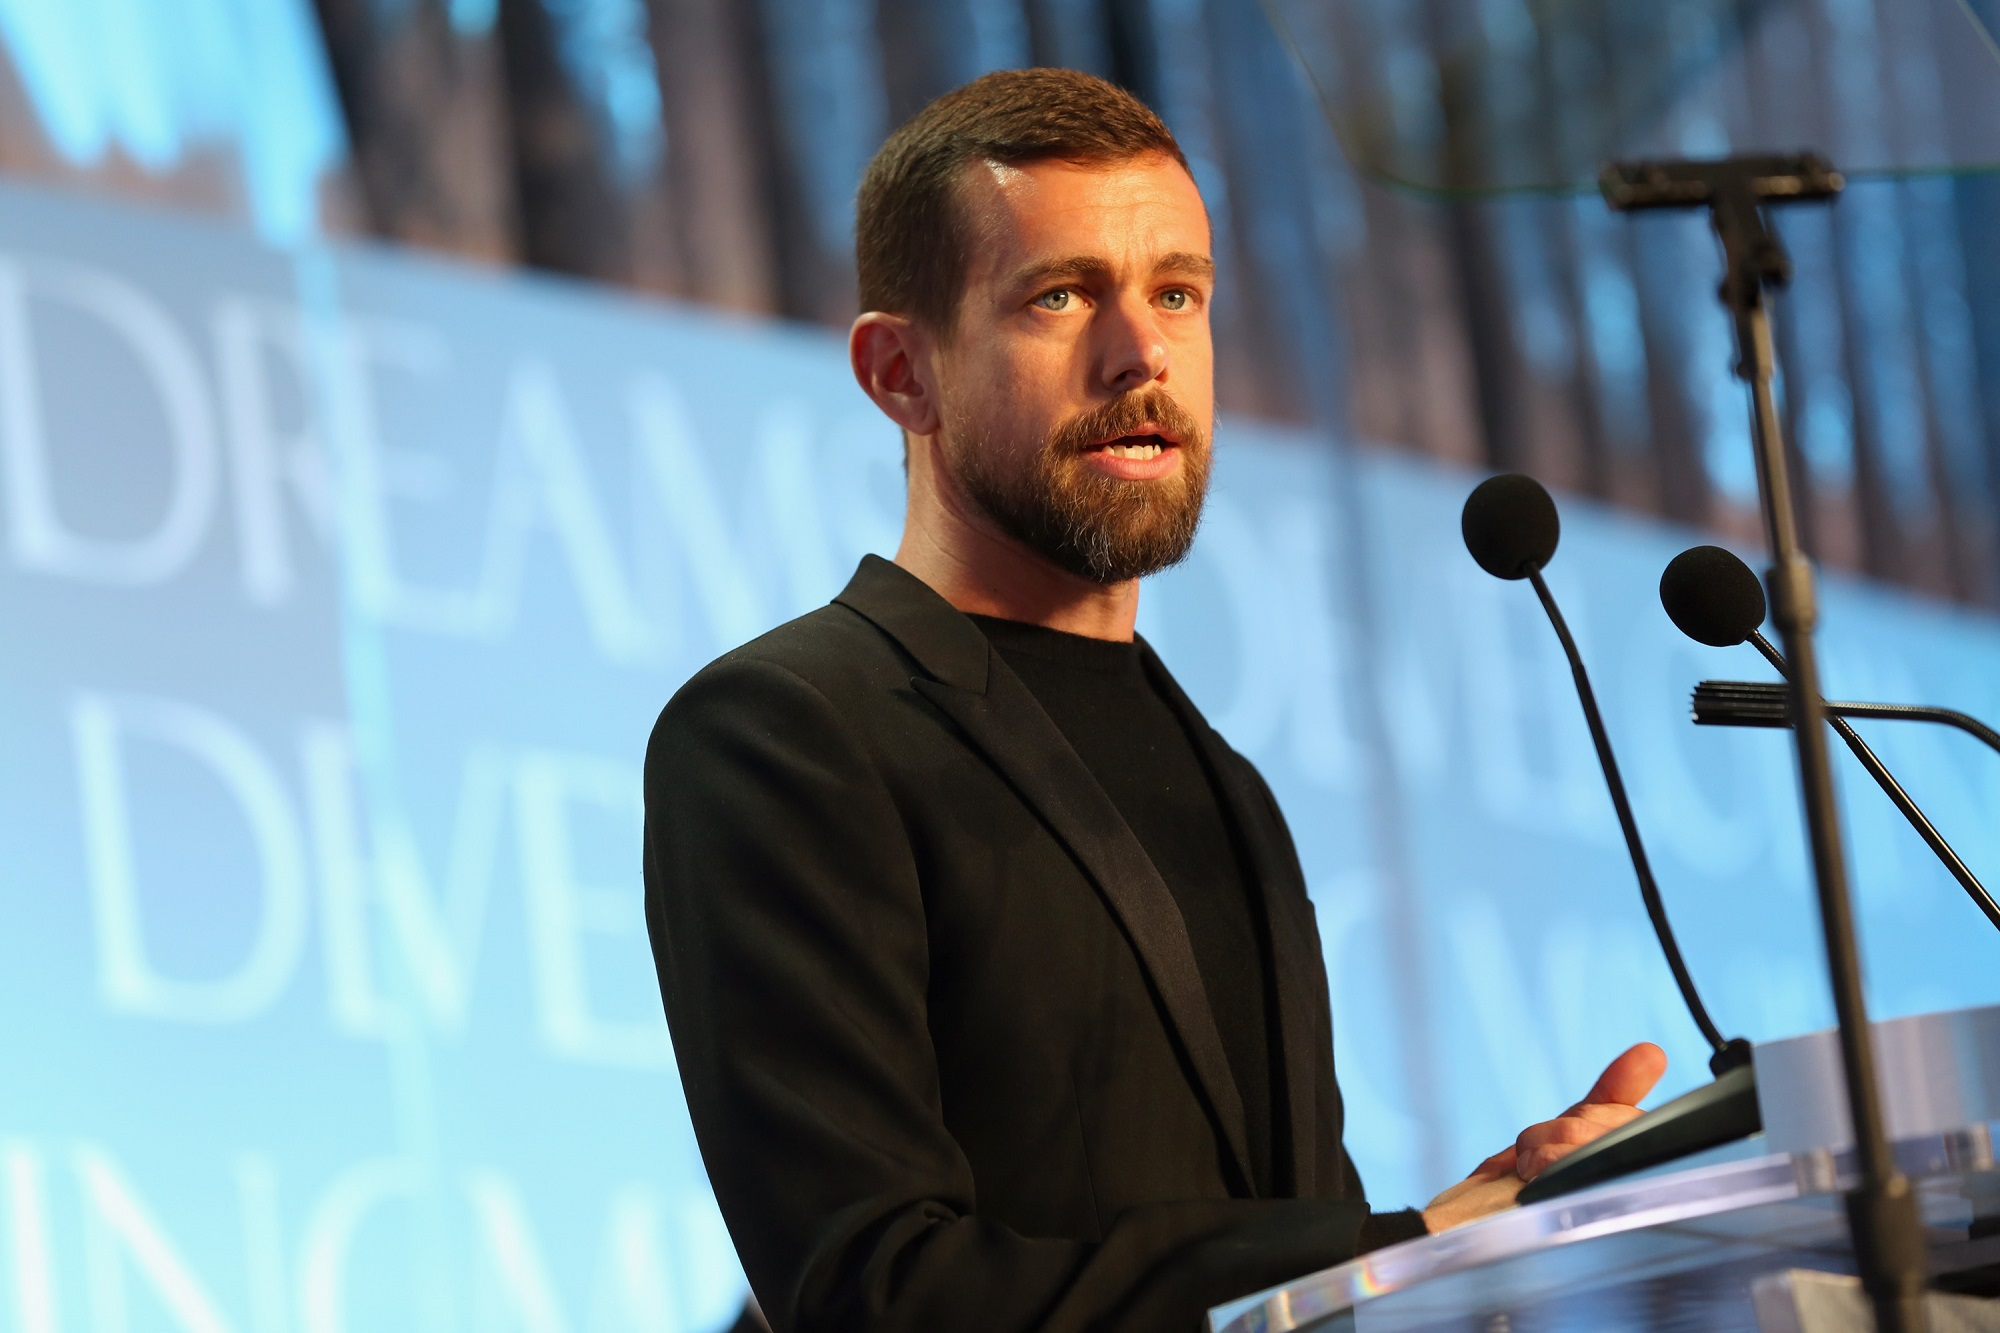 Twitter begins enforcing new anti-hate speech rules